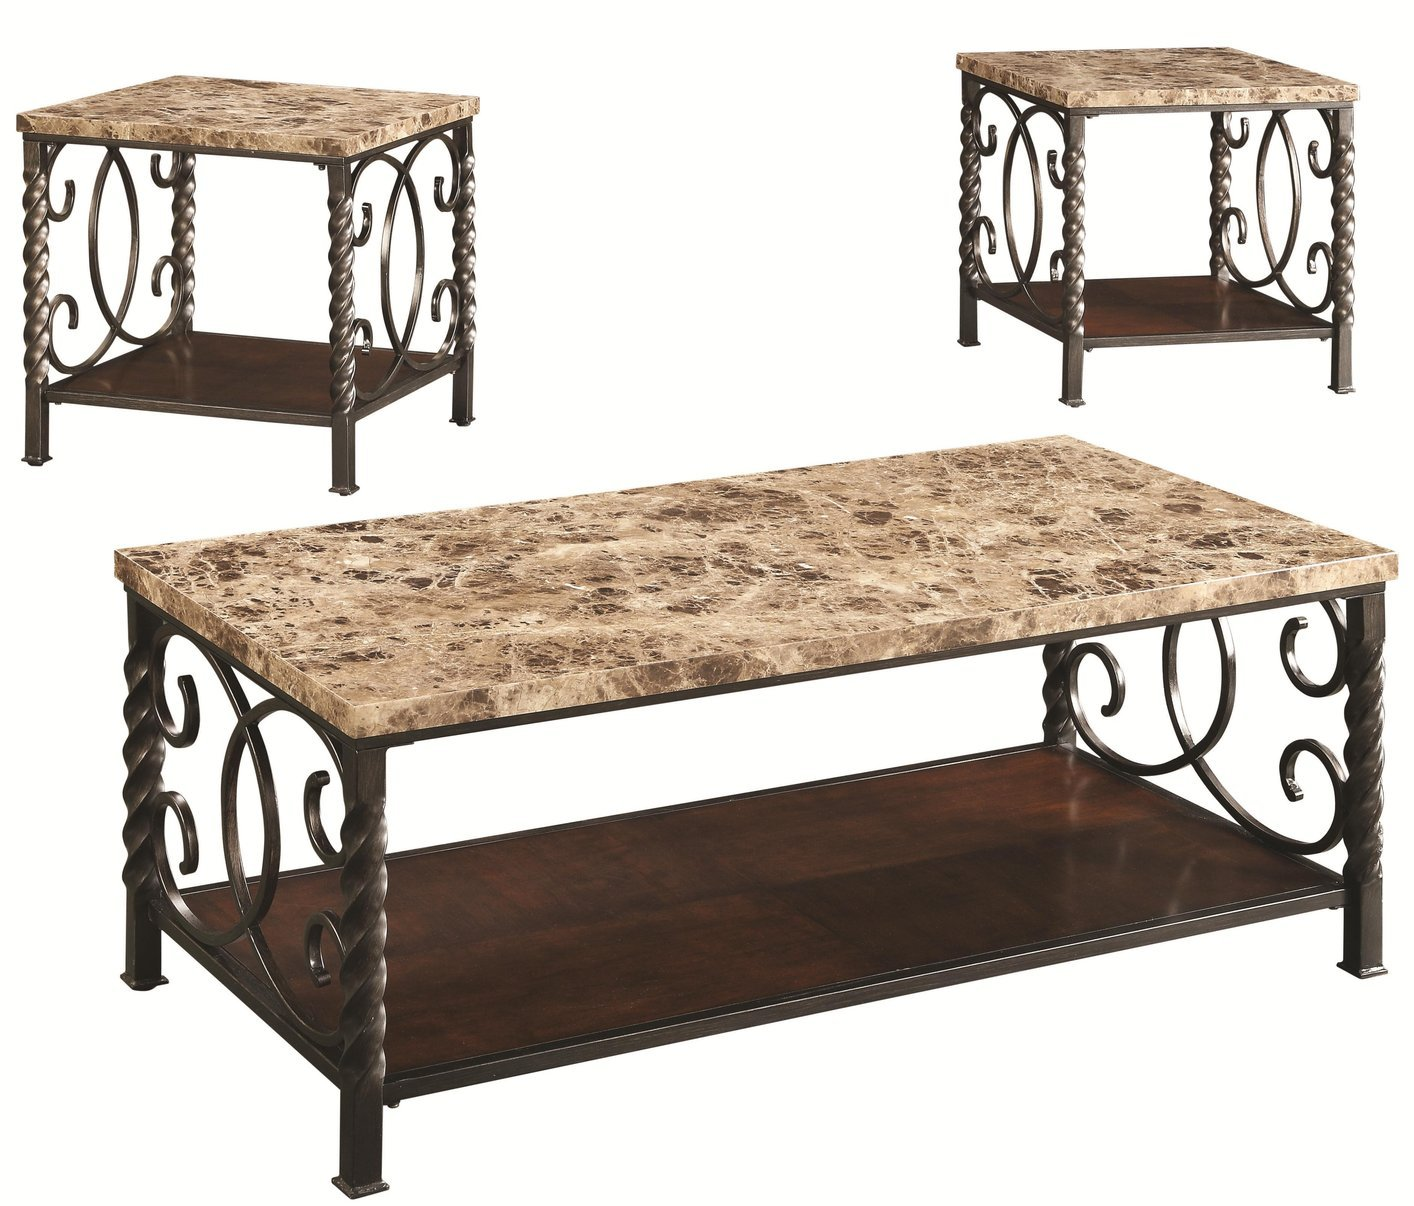 Lockhart Brown Marble Coffee Table Set Steal A Sofa Furniture Outlet Los Angeles Ca